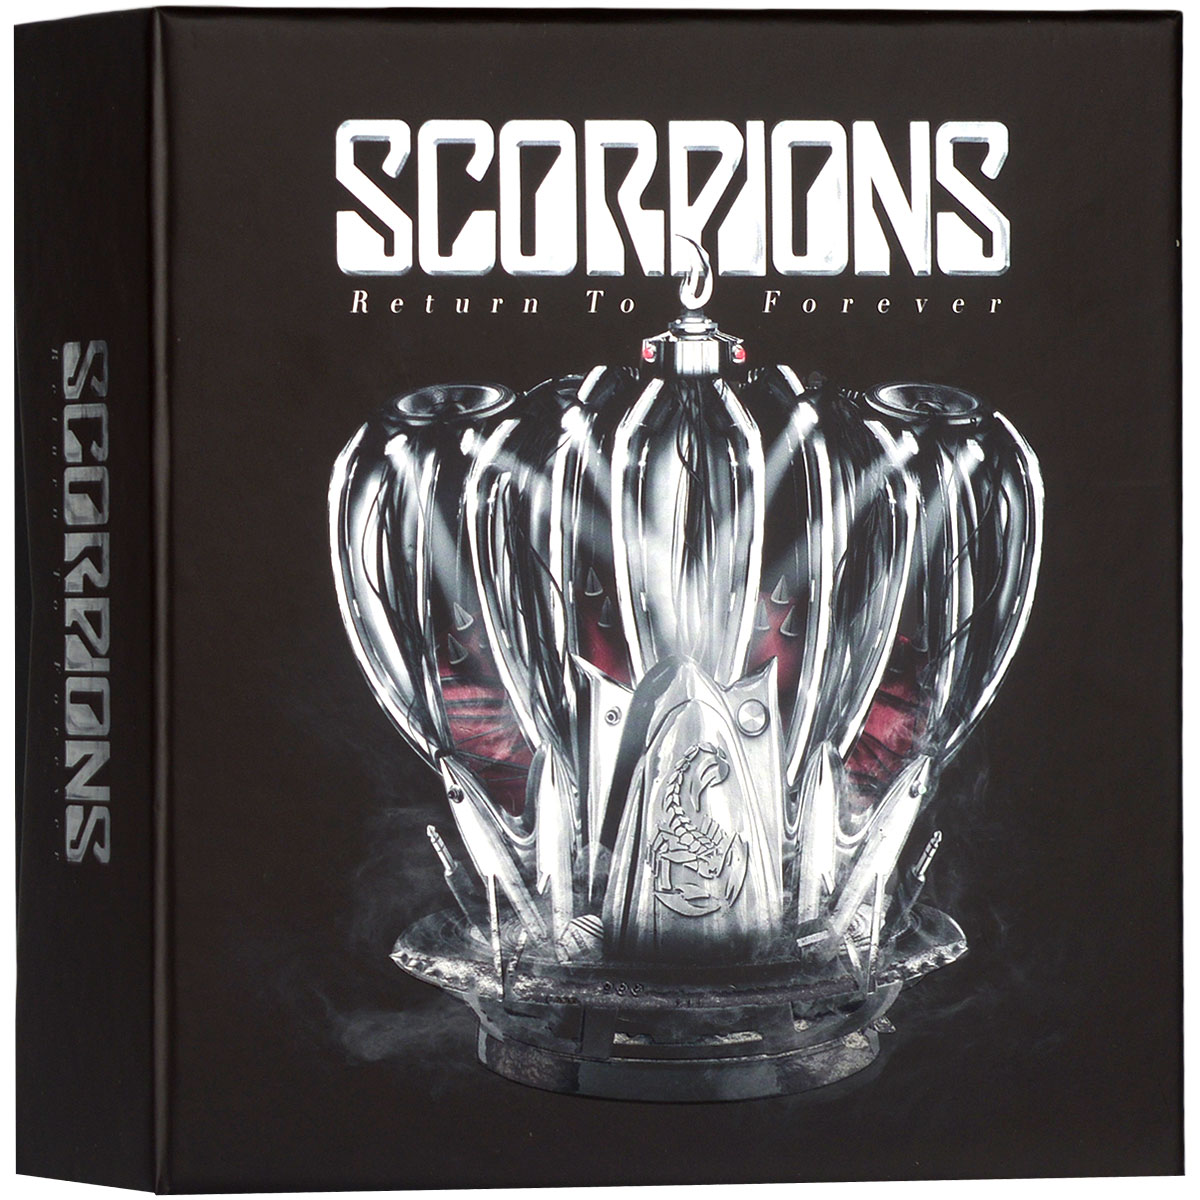 Scorpions Scorpions. Return To Forever. Limited 50th Anniversary Collector'S Box (3 CD + LP) cd диск the doors strange days 40th anniversary 1 cd